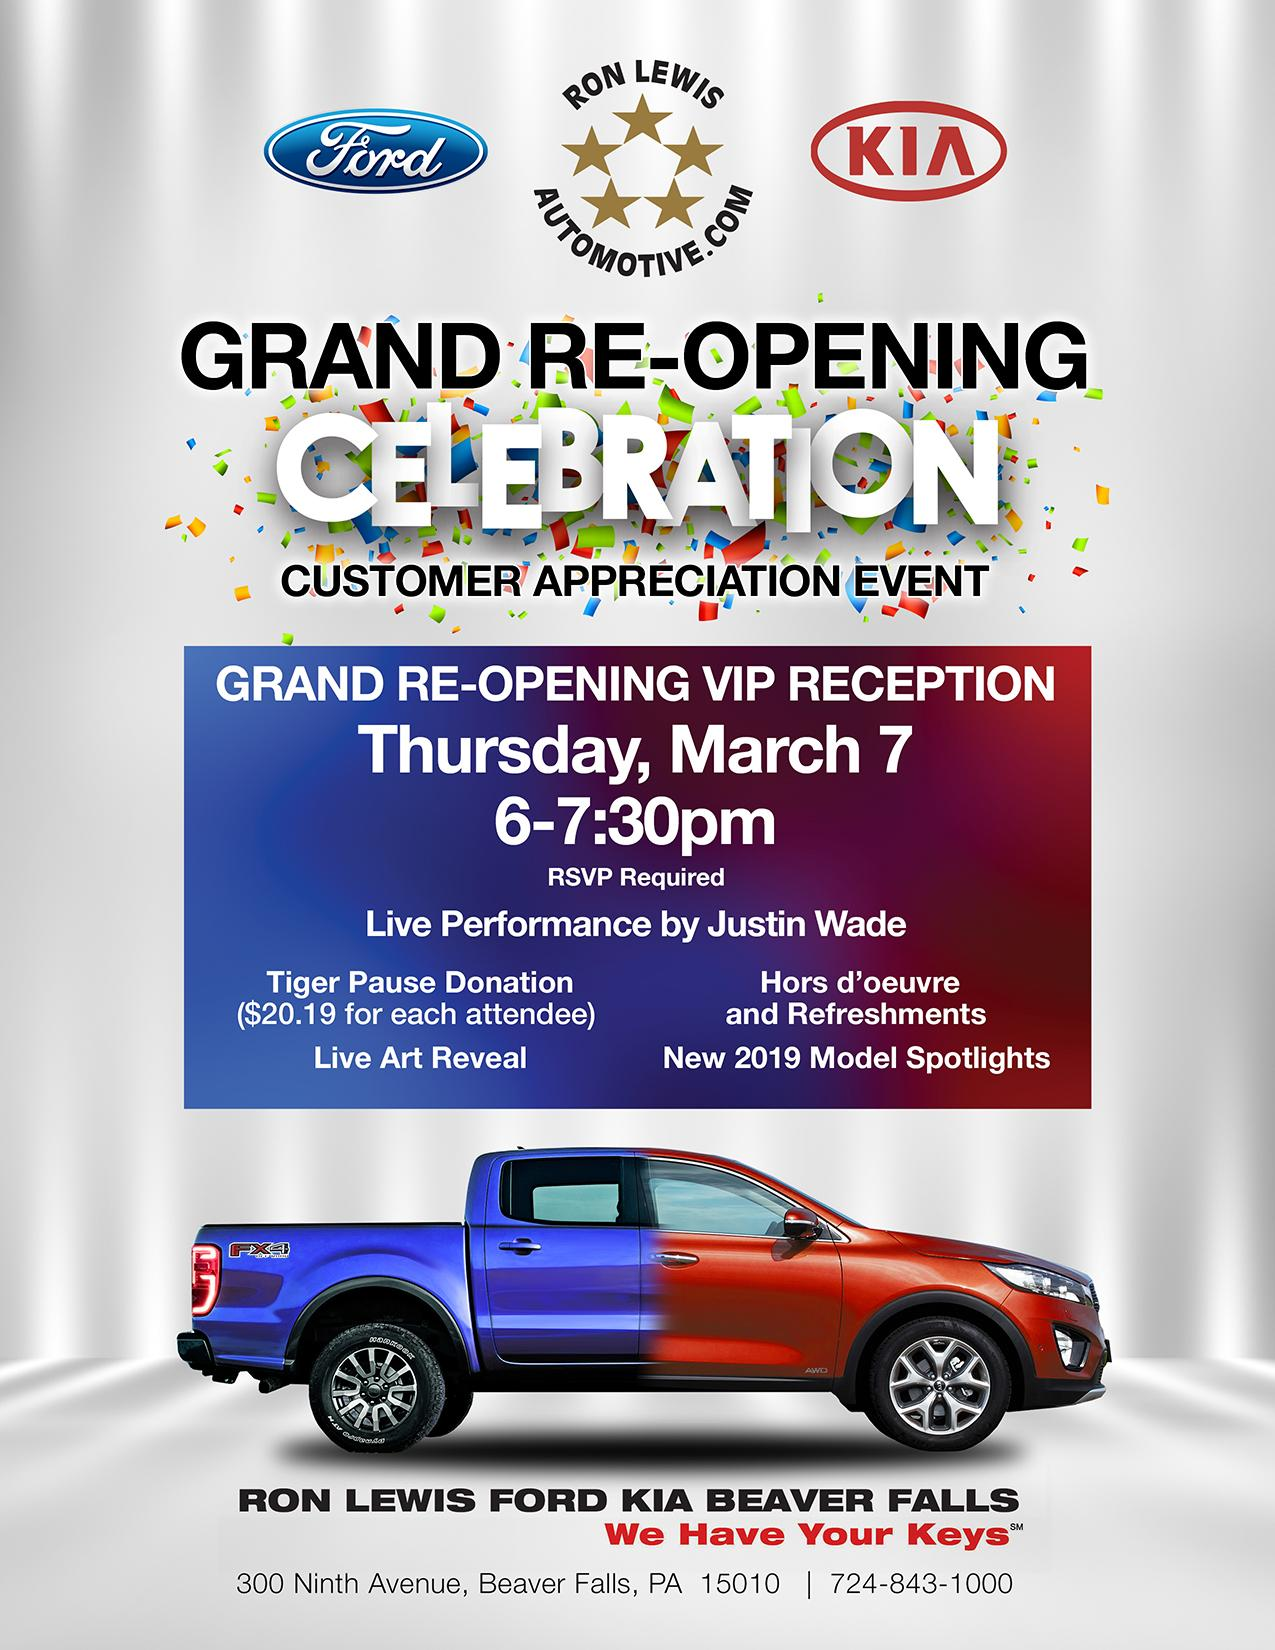 ron lewis ford kia beaver falls grand re opening event. Black Bedroom Furniture Sets. Home Design Ideas